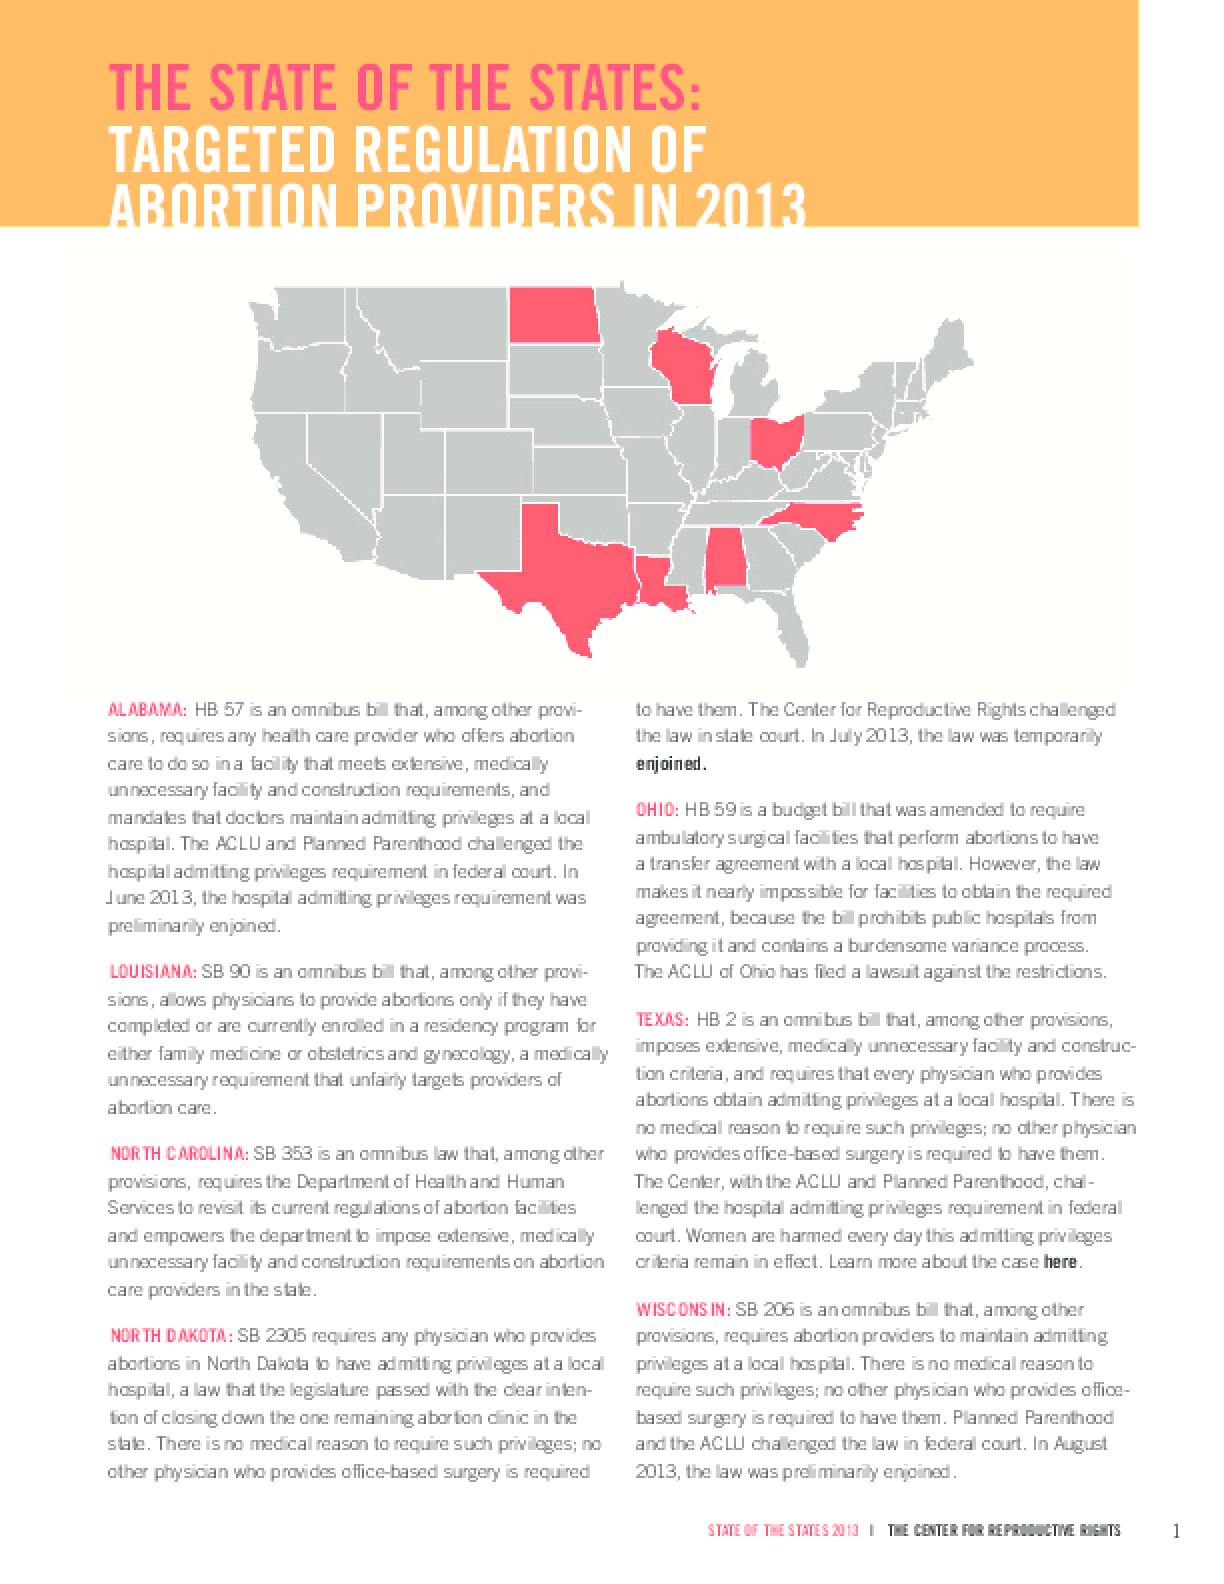 The State of the States: Targeted Regulation of Abortion Providers in 2013